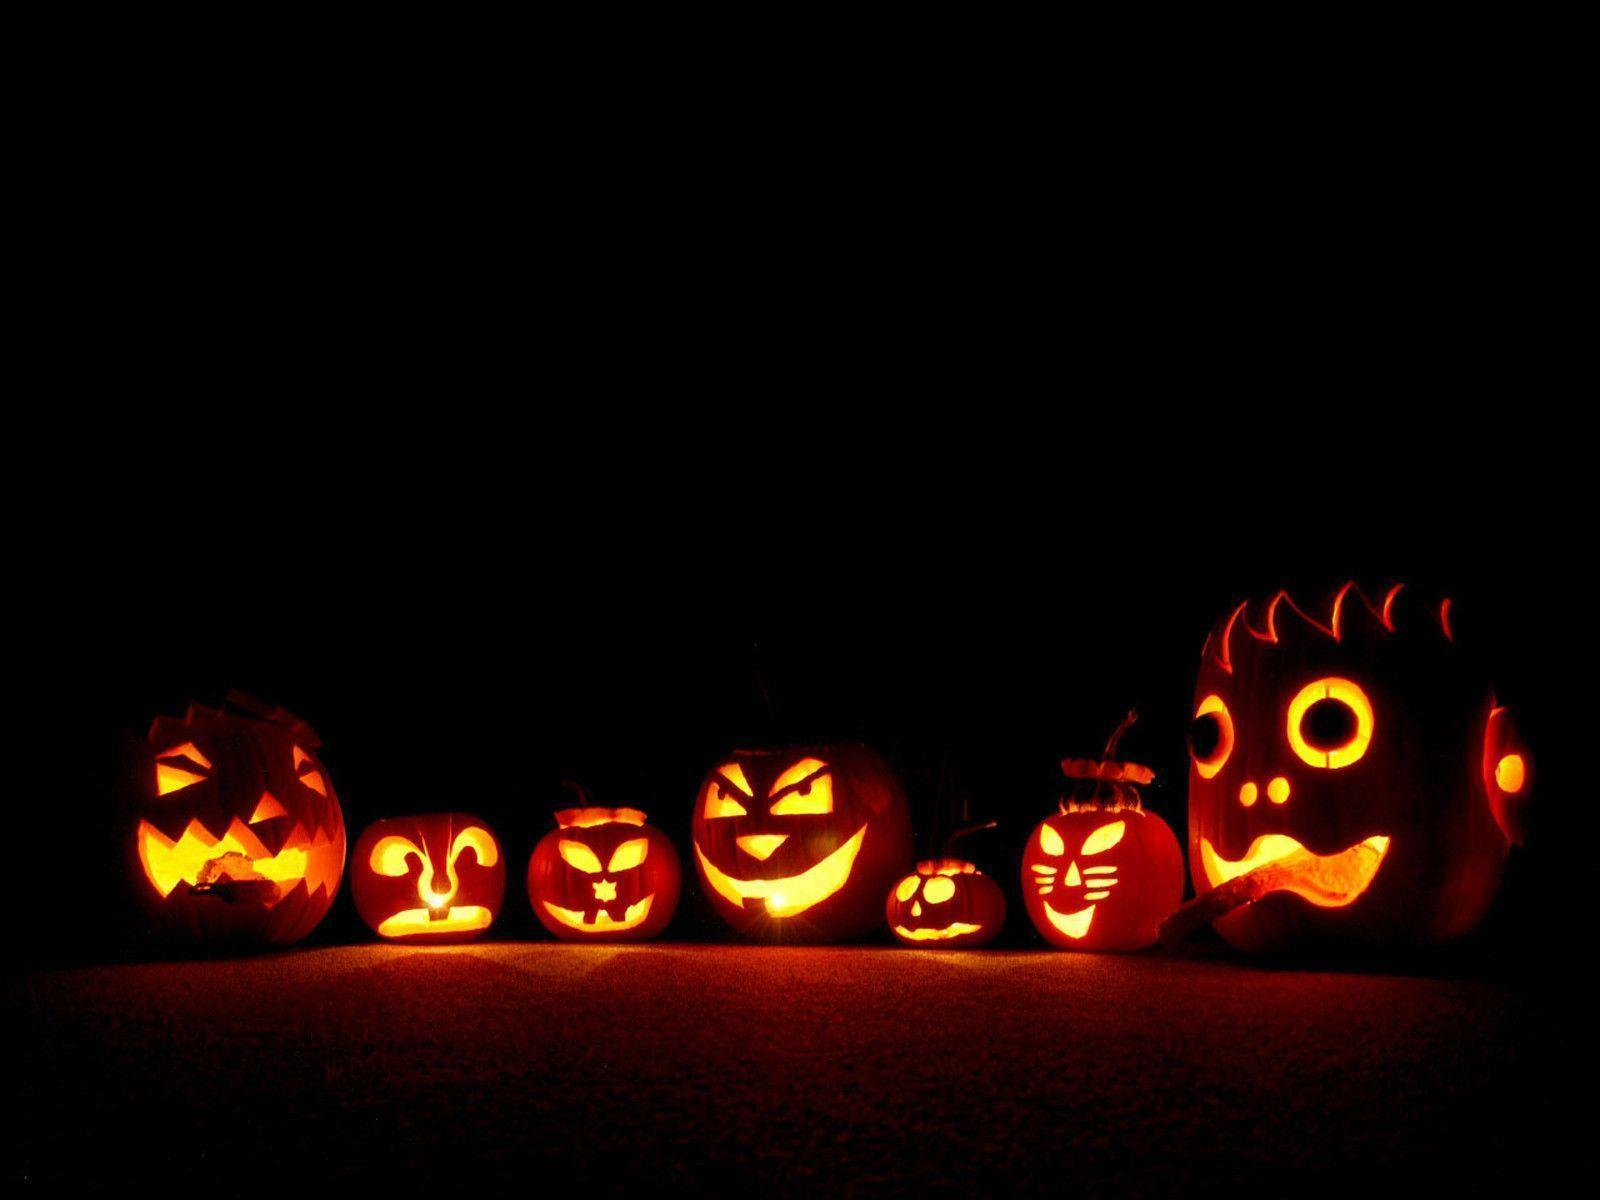 Halloween Pumpkin Wallpaper Hd.Halloween Pumpkins Wallpapers Wallpaper Cave